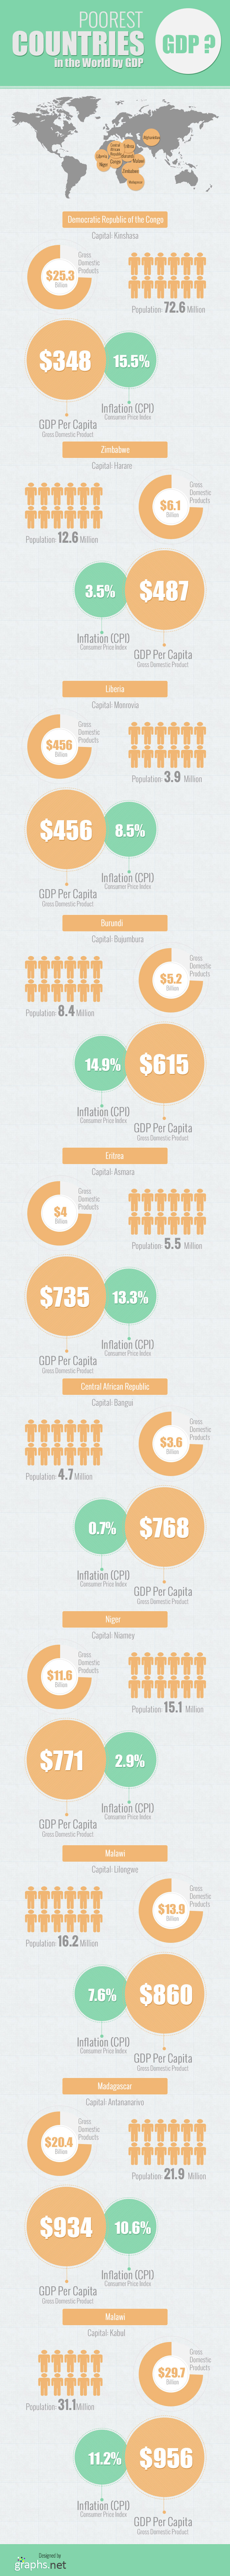 Poorest Countries in the World by GDP